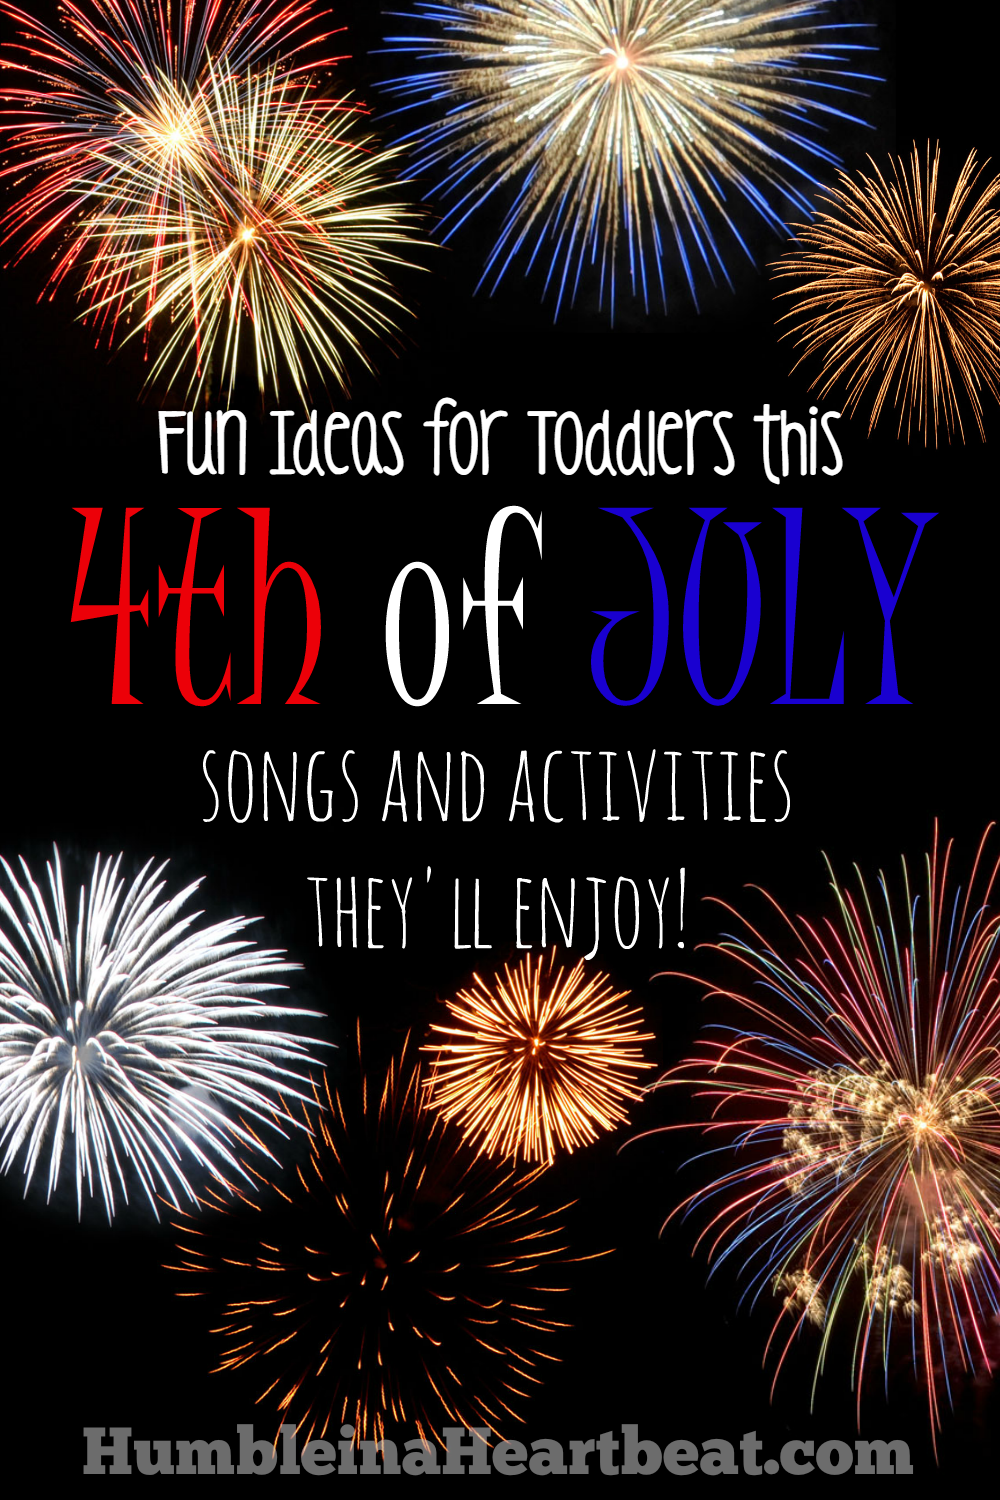 Toddlers can be overwhelmed with all the fireworks, parades, and gatherings for the 4th of July. Make it easier on them by sharing the importance of the day through song and doing activities they will enjoy throughout the month!